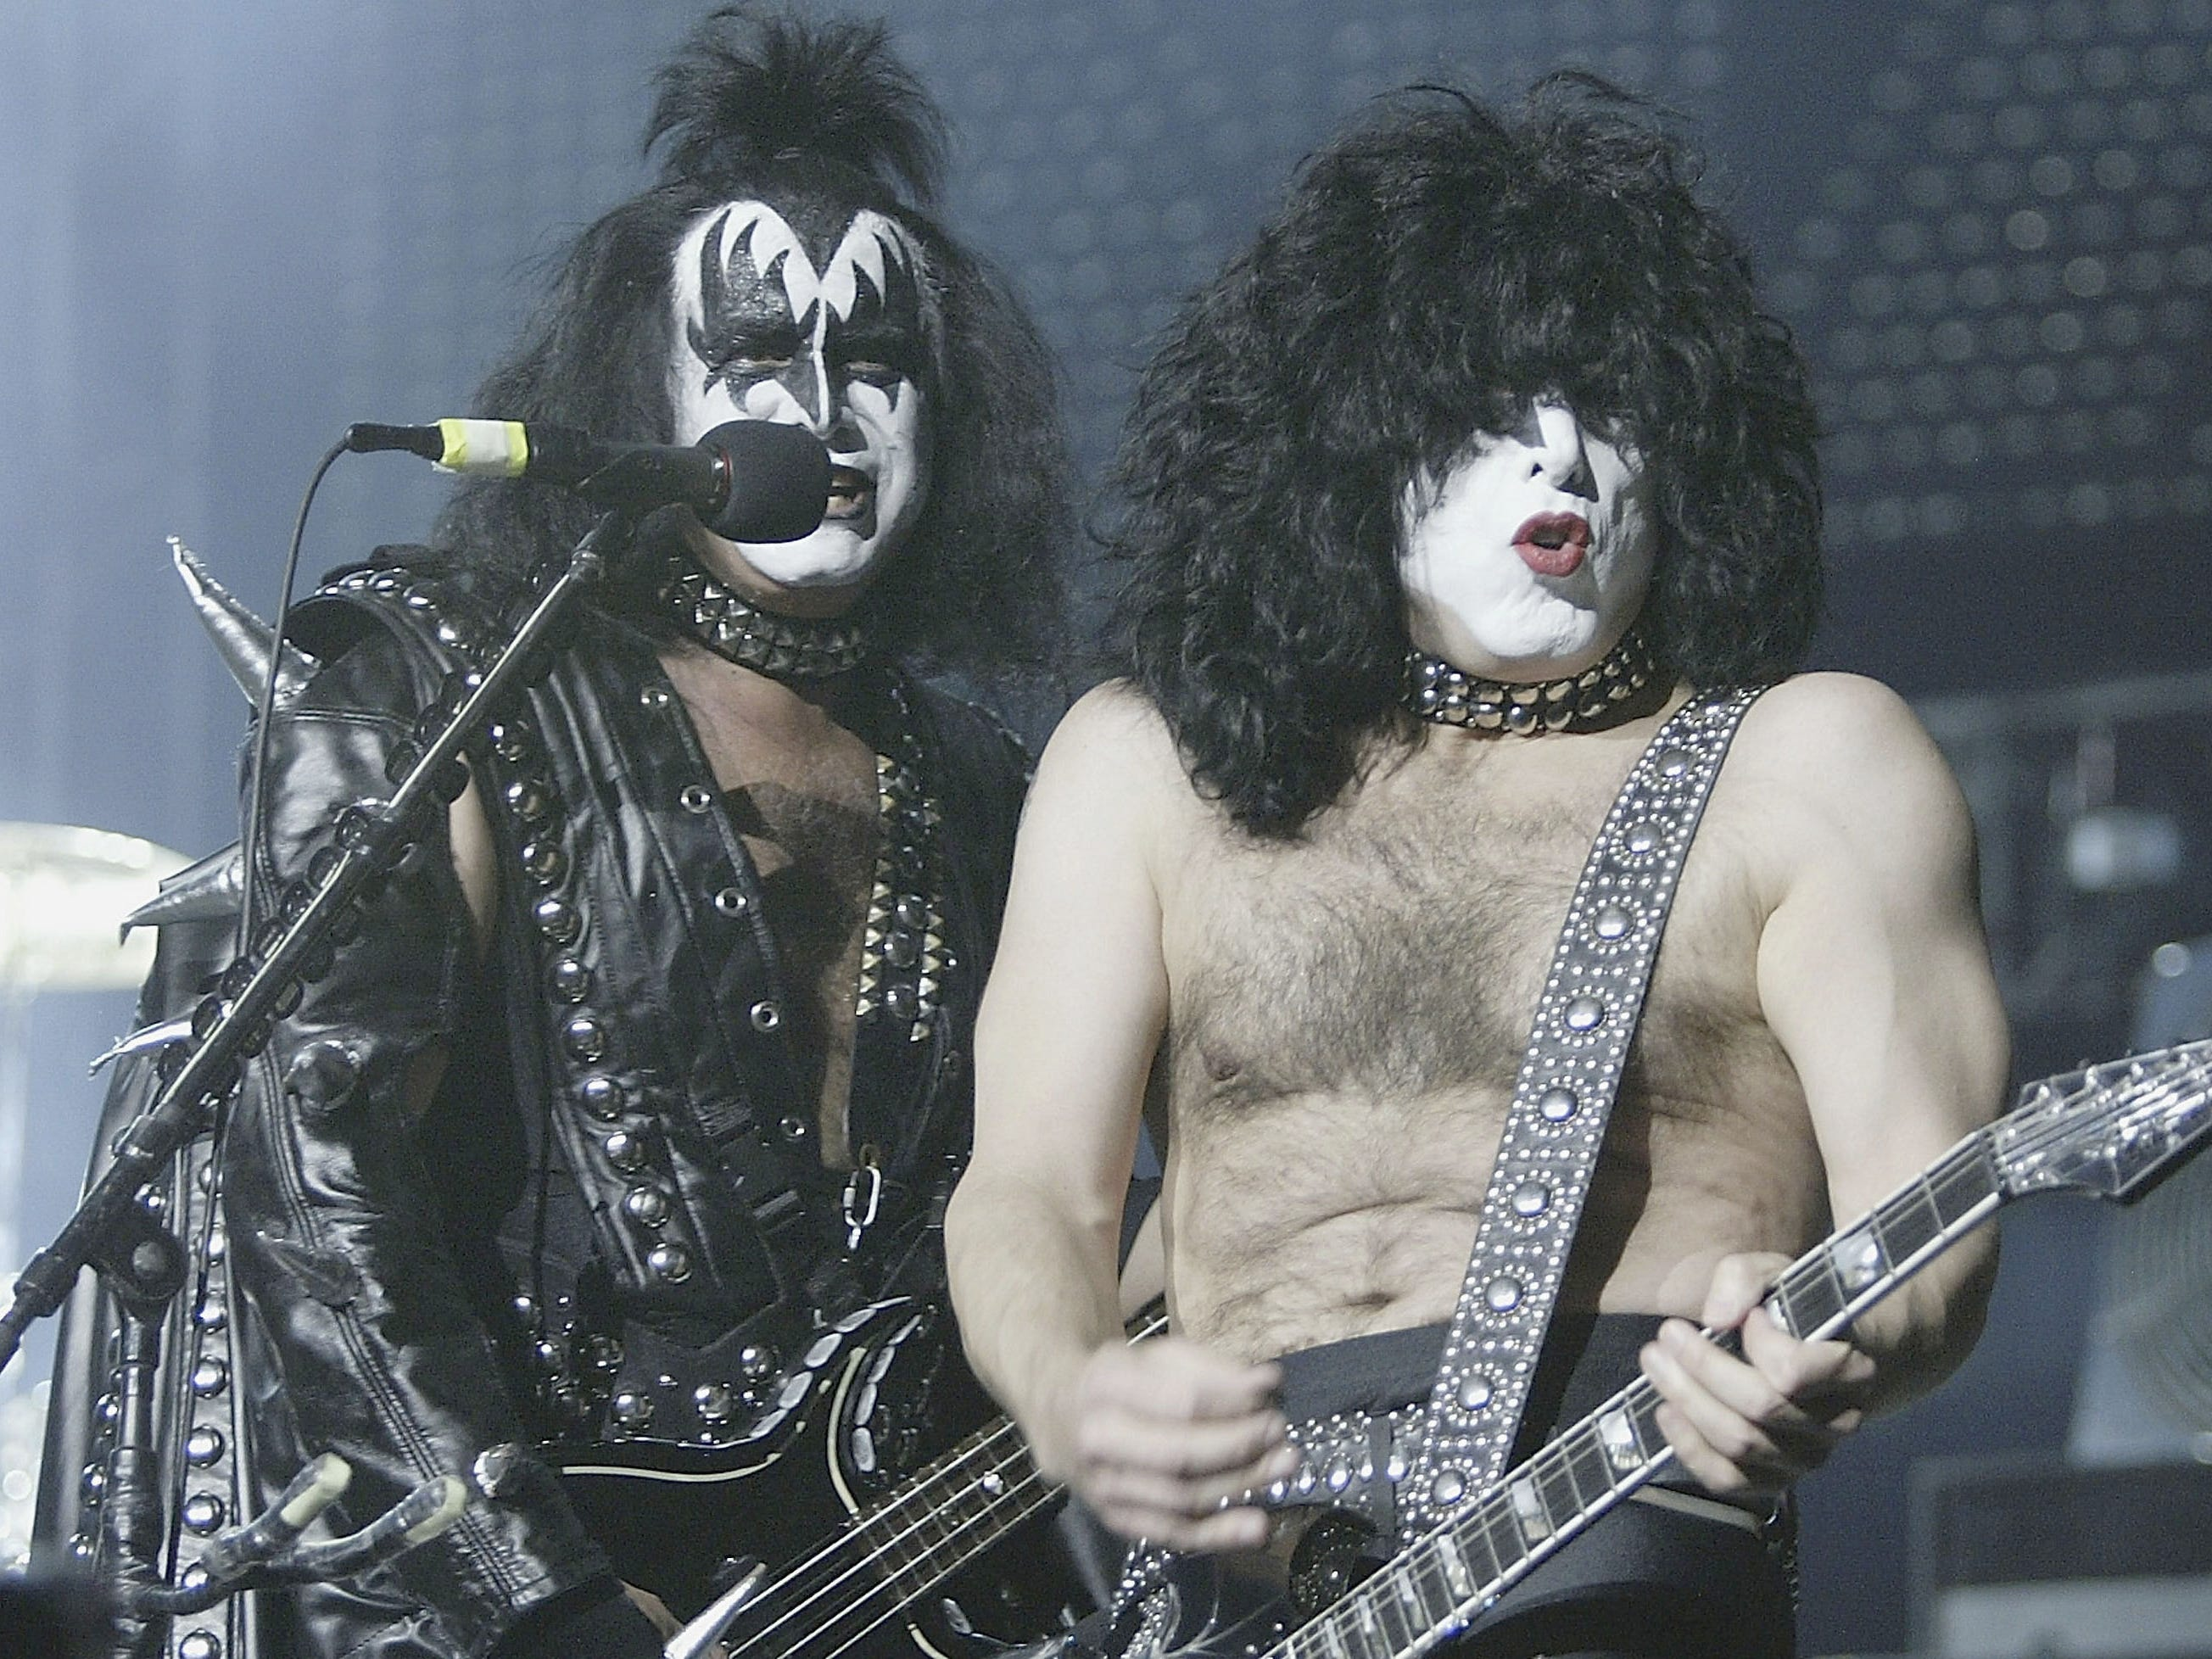 MELBOURNE, AUSTRALIA - MAY 13:  Gene Simmons, and Paul Stanley of KISS perform live during the 2004 Rock the Nation World Tour,  at the Rod Laver Arena, May 13, 2004 in Melbourne, Australia. (Photo by Robert Cianflone/Getty)